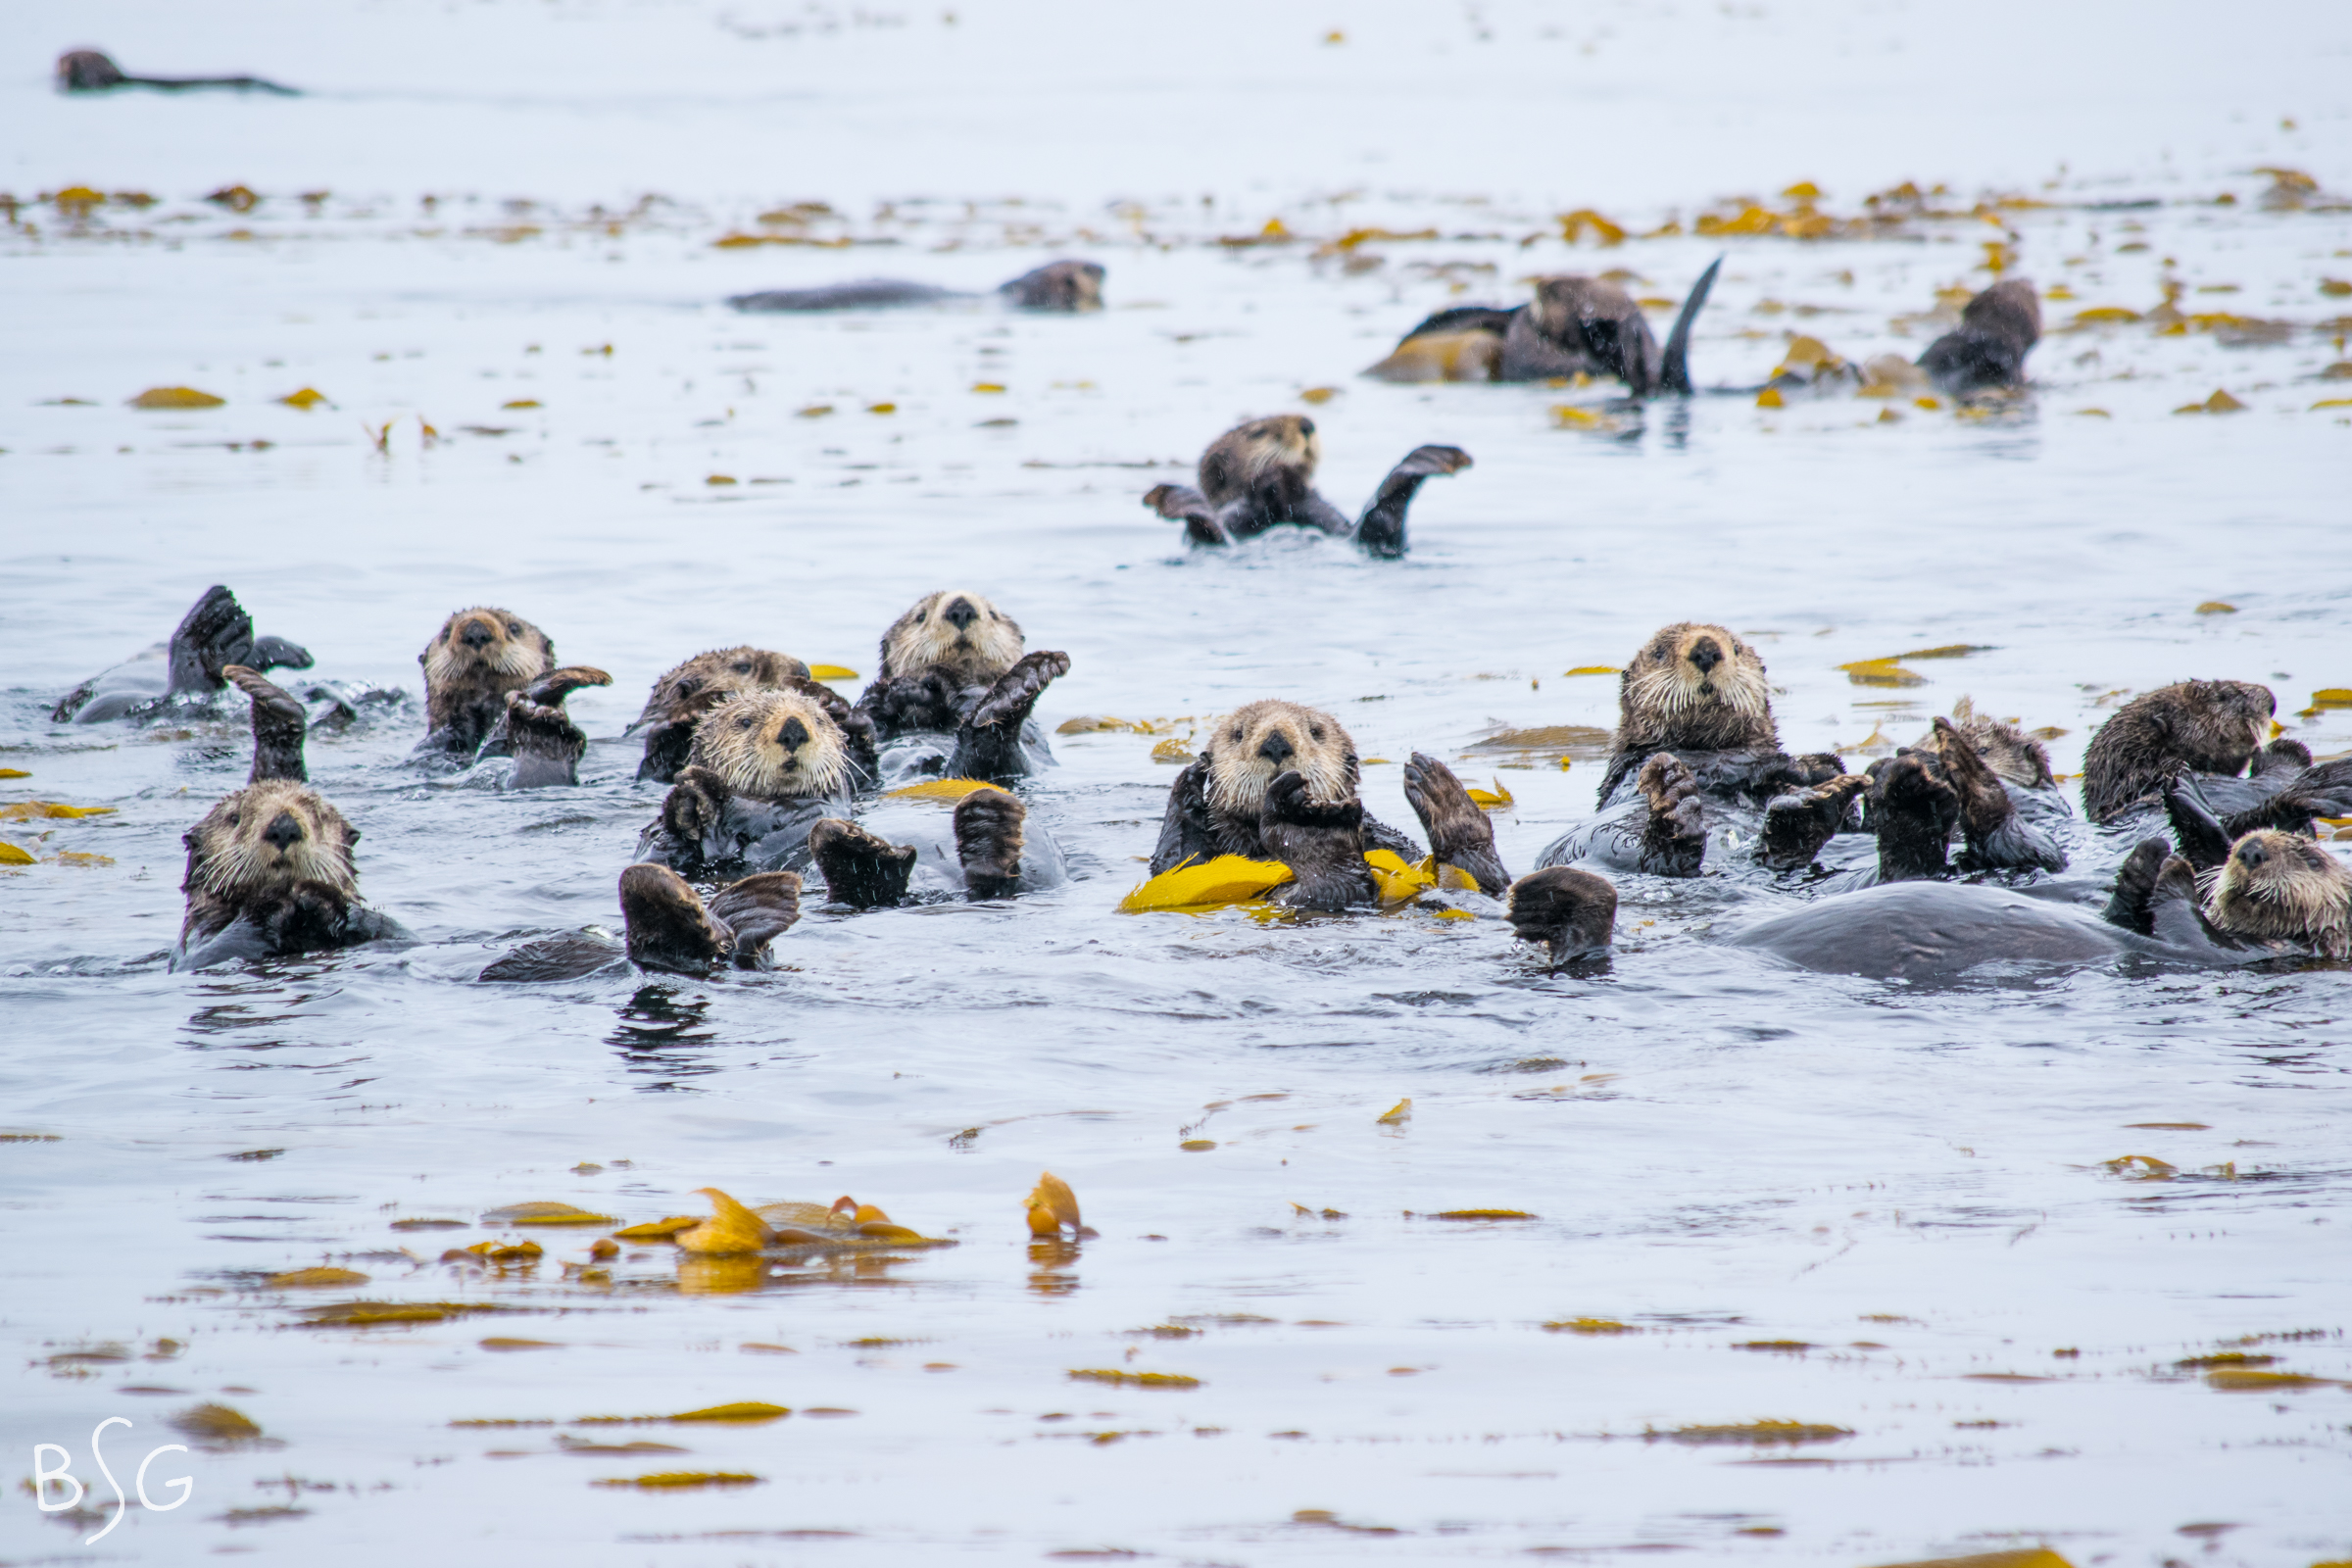 A raft of male sea otters relax in a bed of kelp in Sitka Sound, Alaska.